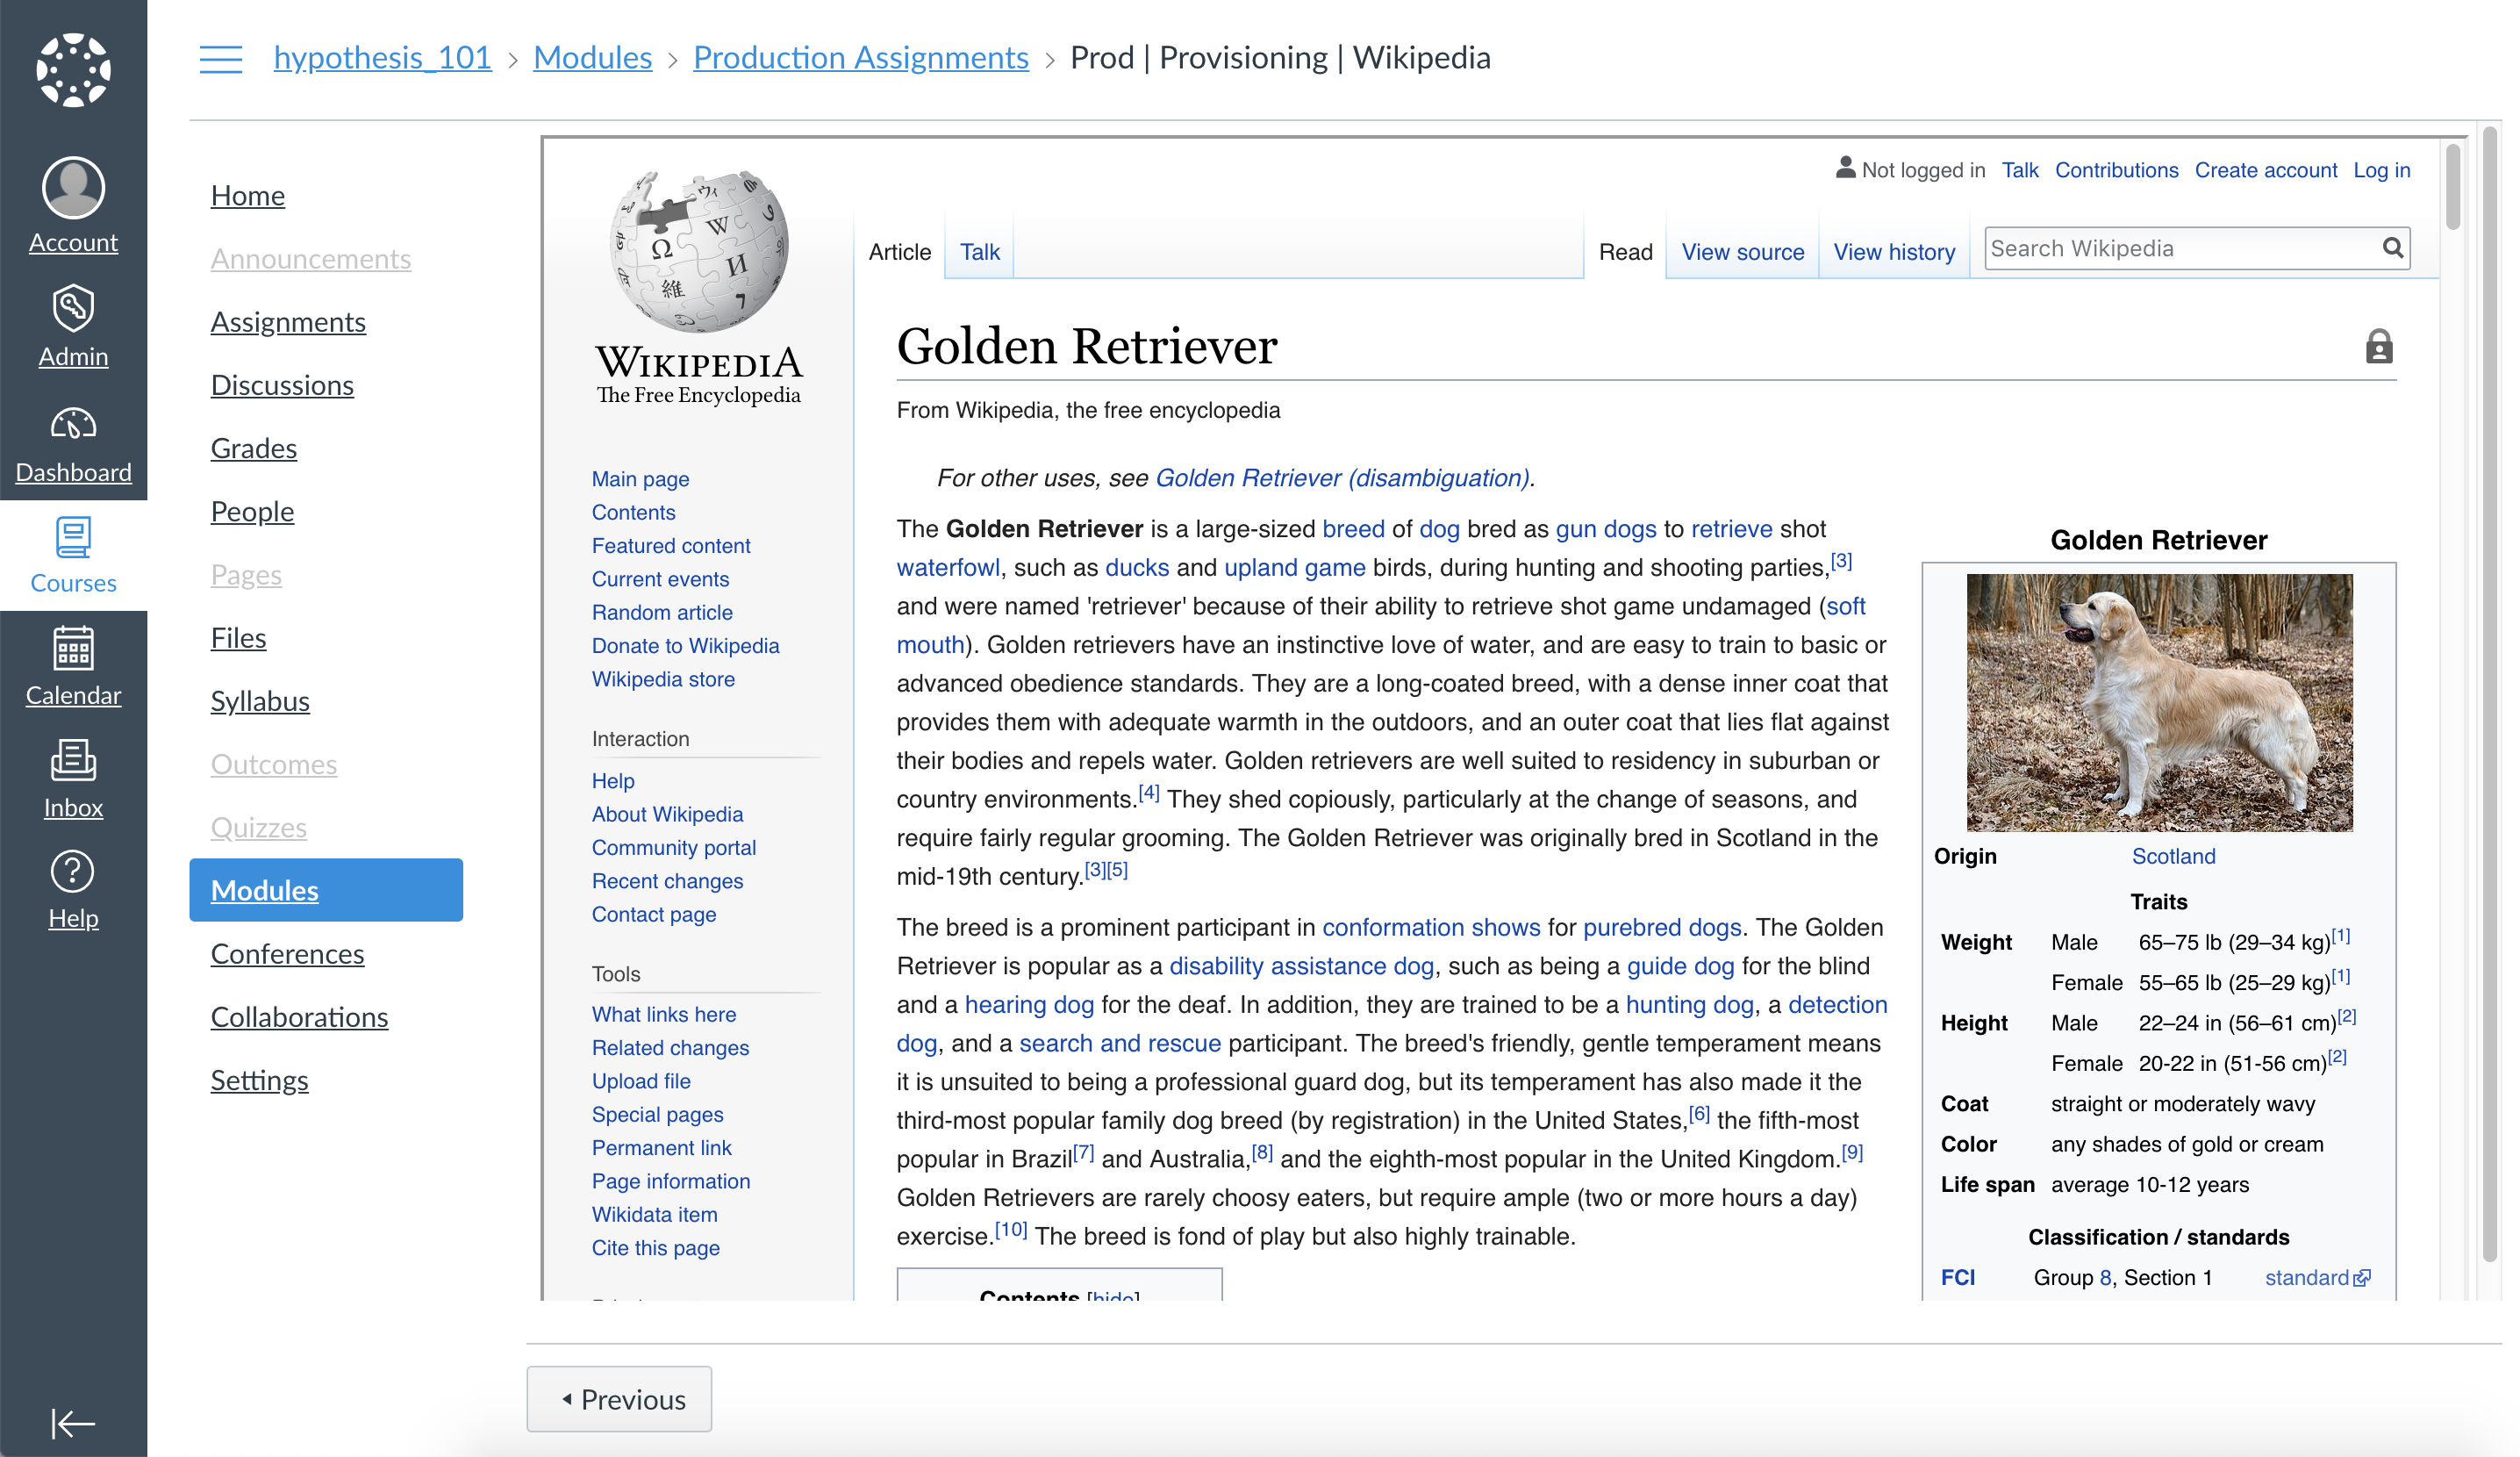 App with provisioning not working with Wikipedia links